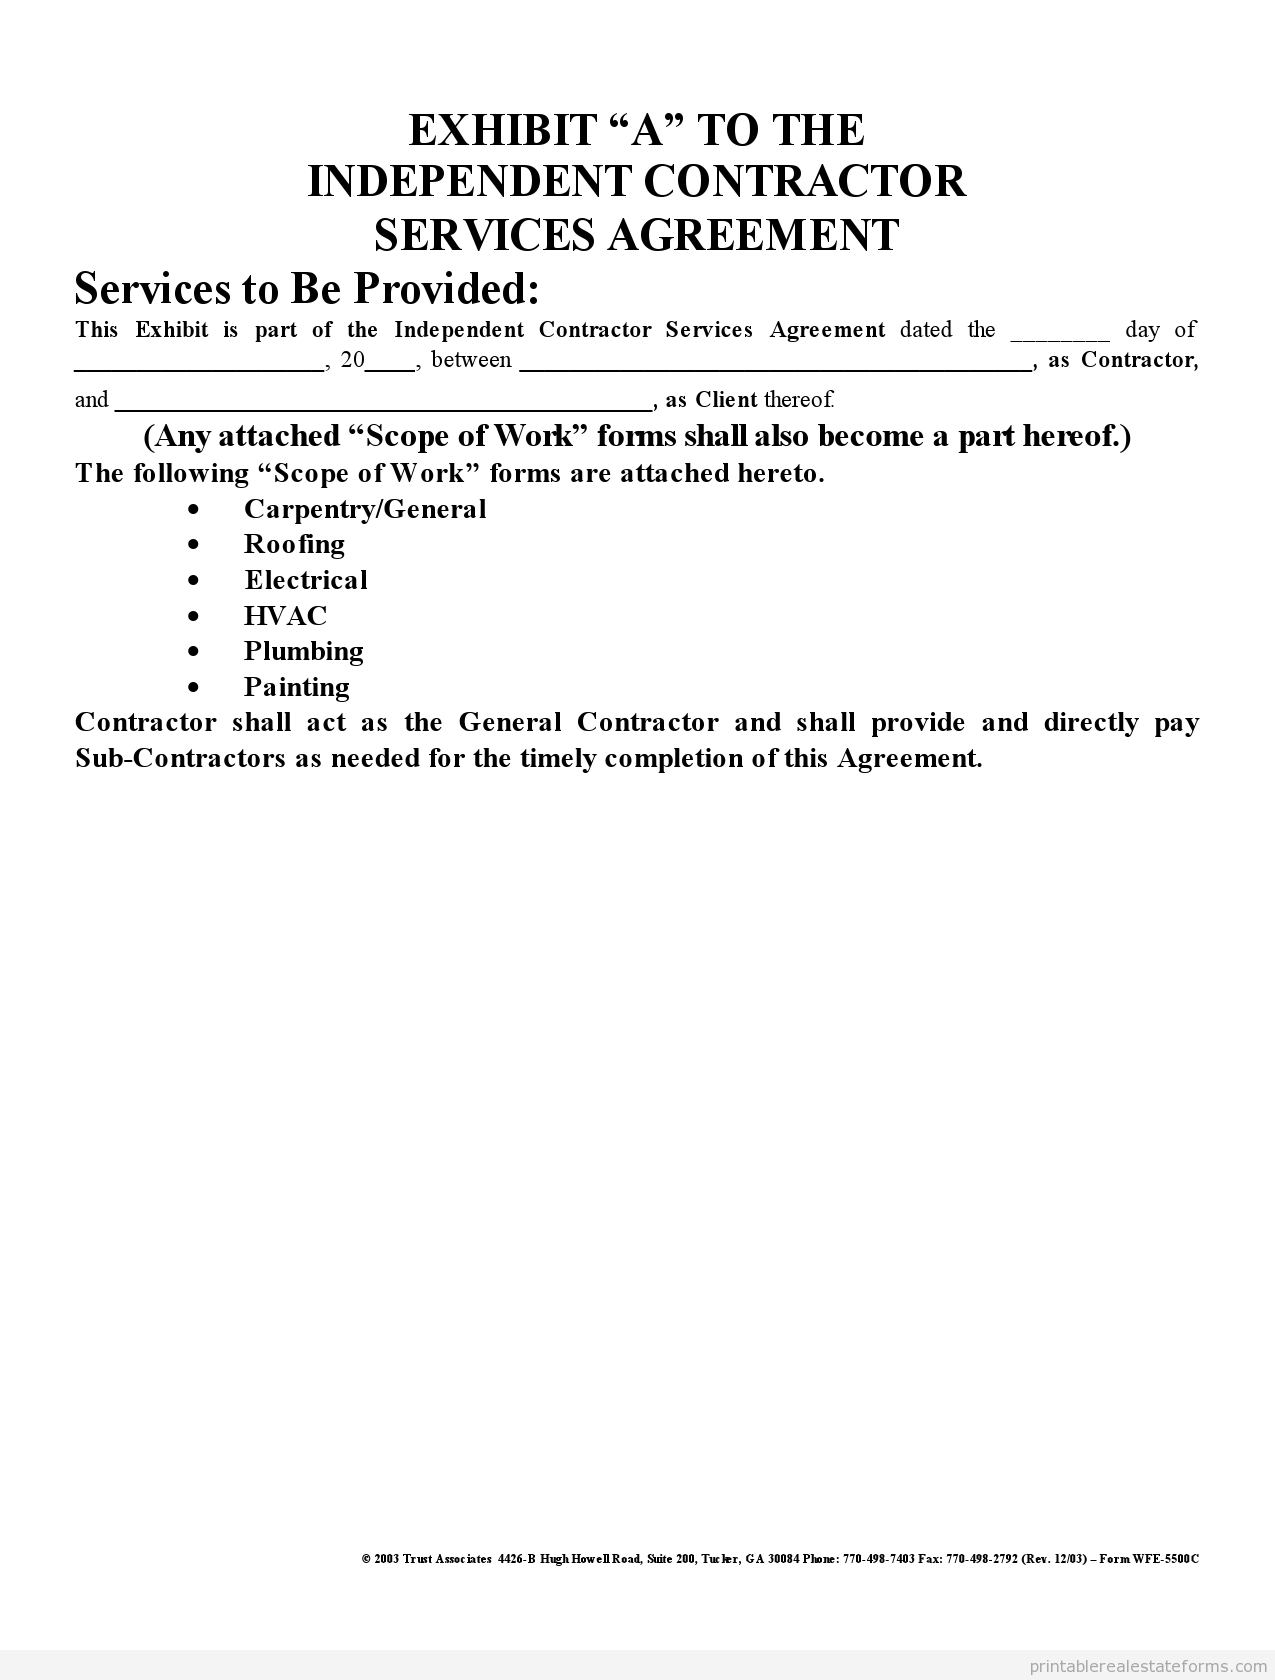 Free Printable independent contractor agreement Form | Printable ...